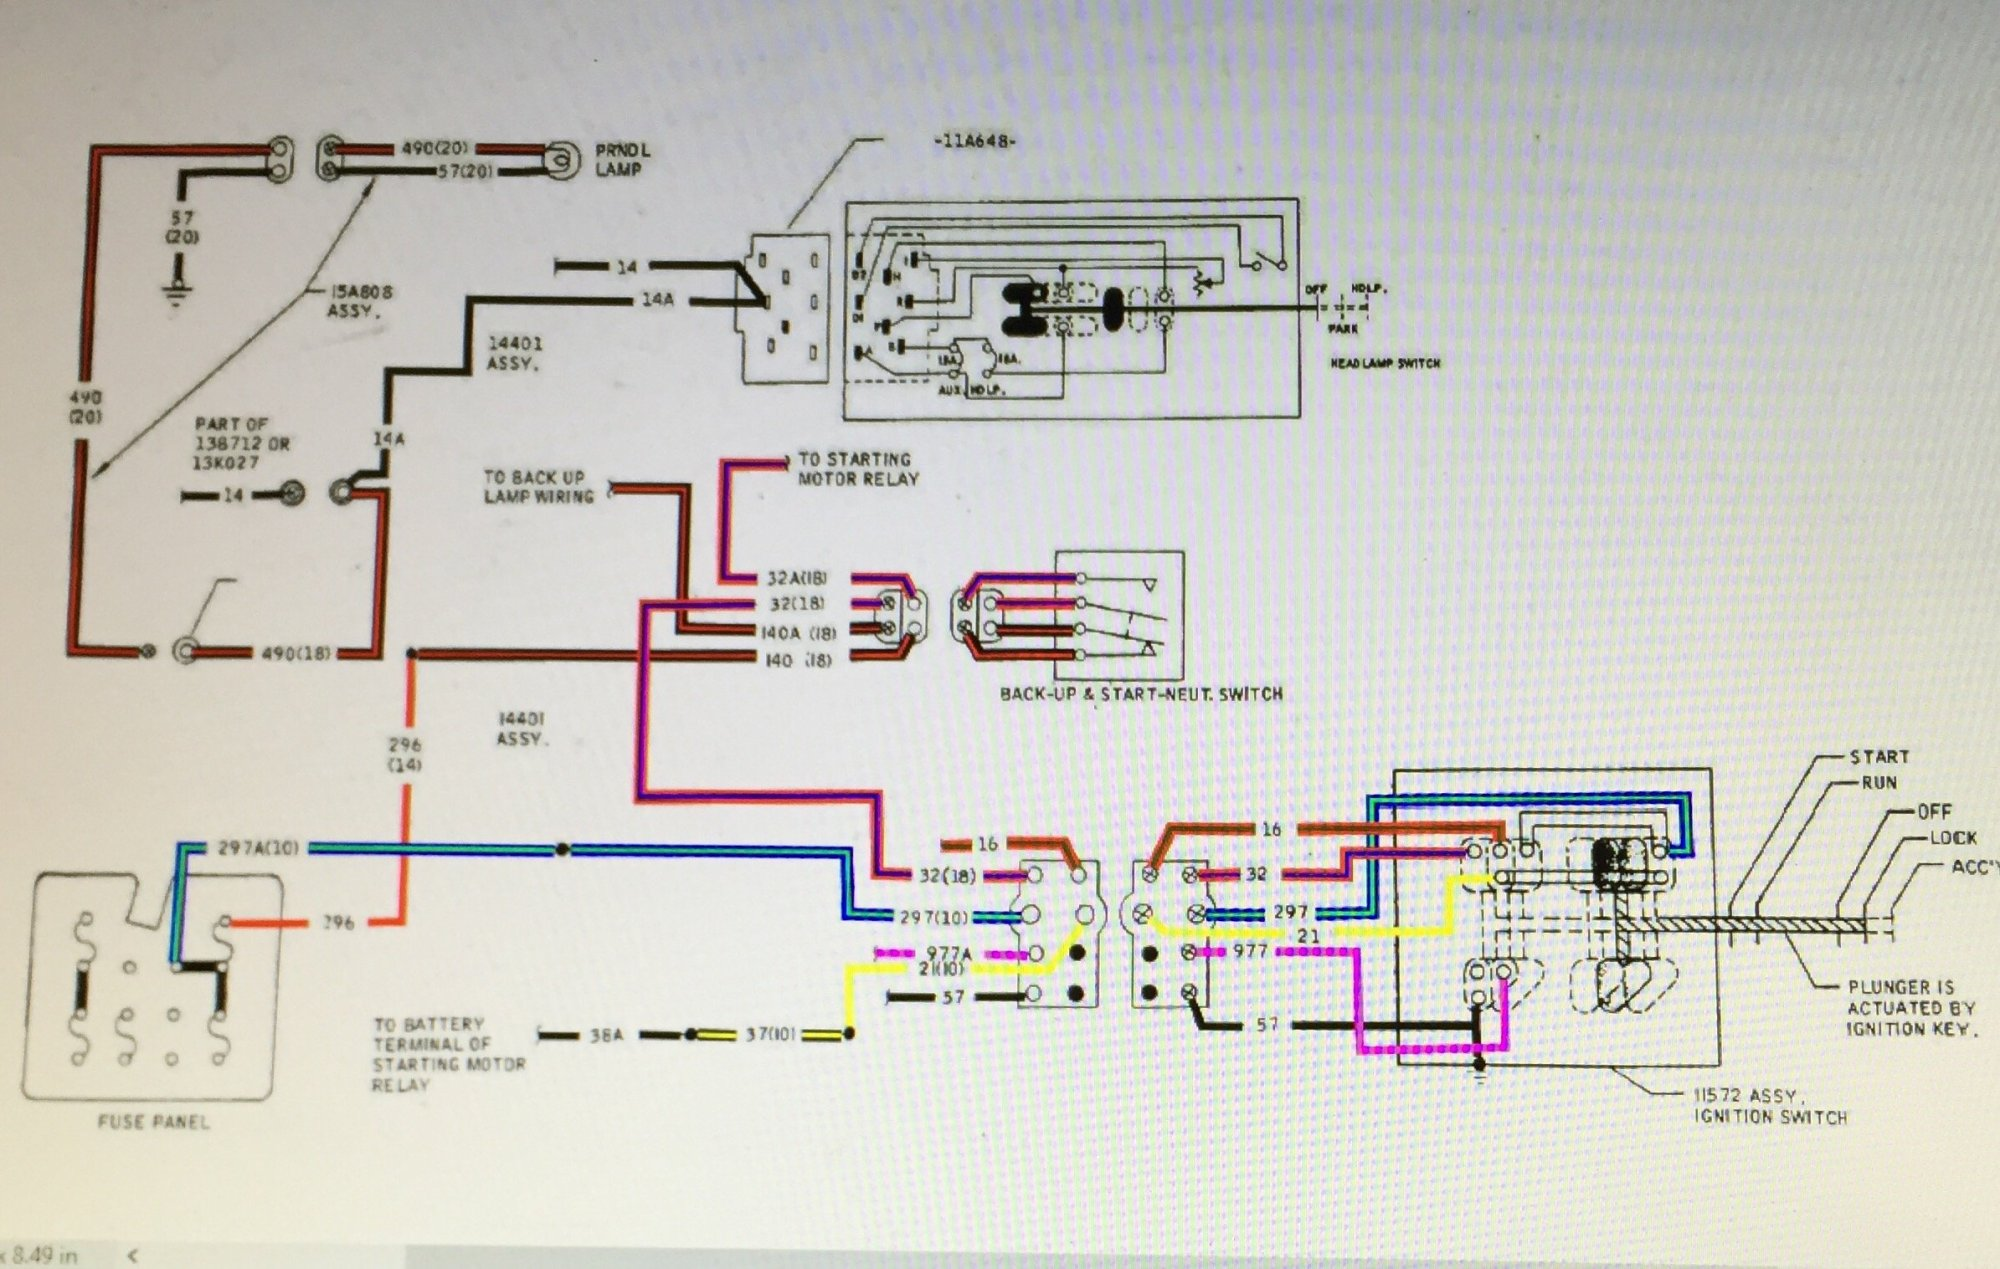 hight resolution of neutral safety switch wiring diagram 1979 plymouth wiring library rh 36 codingcommunity de 4l80e neutral safety switch wiring diagram dodge neutral safety